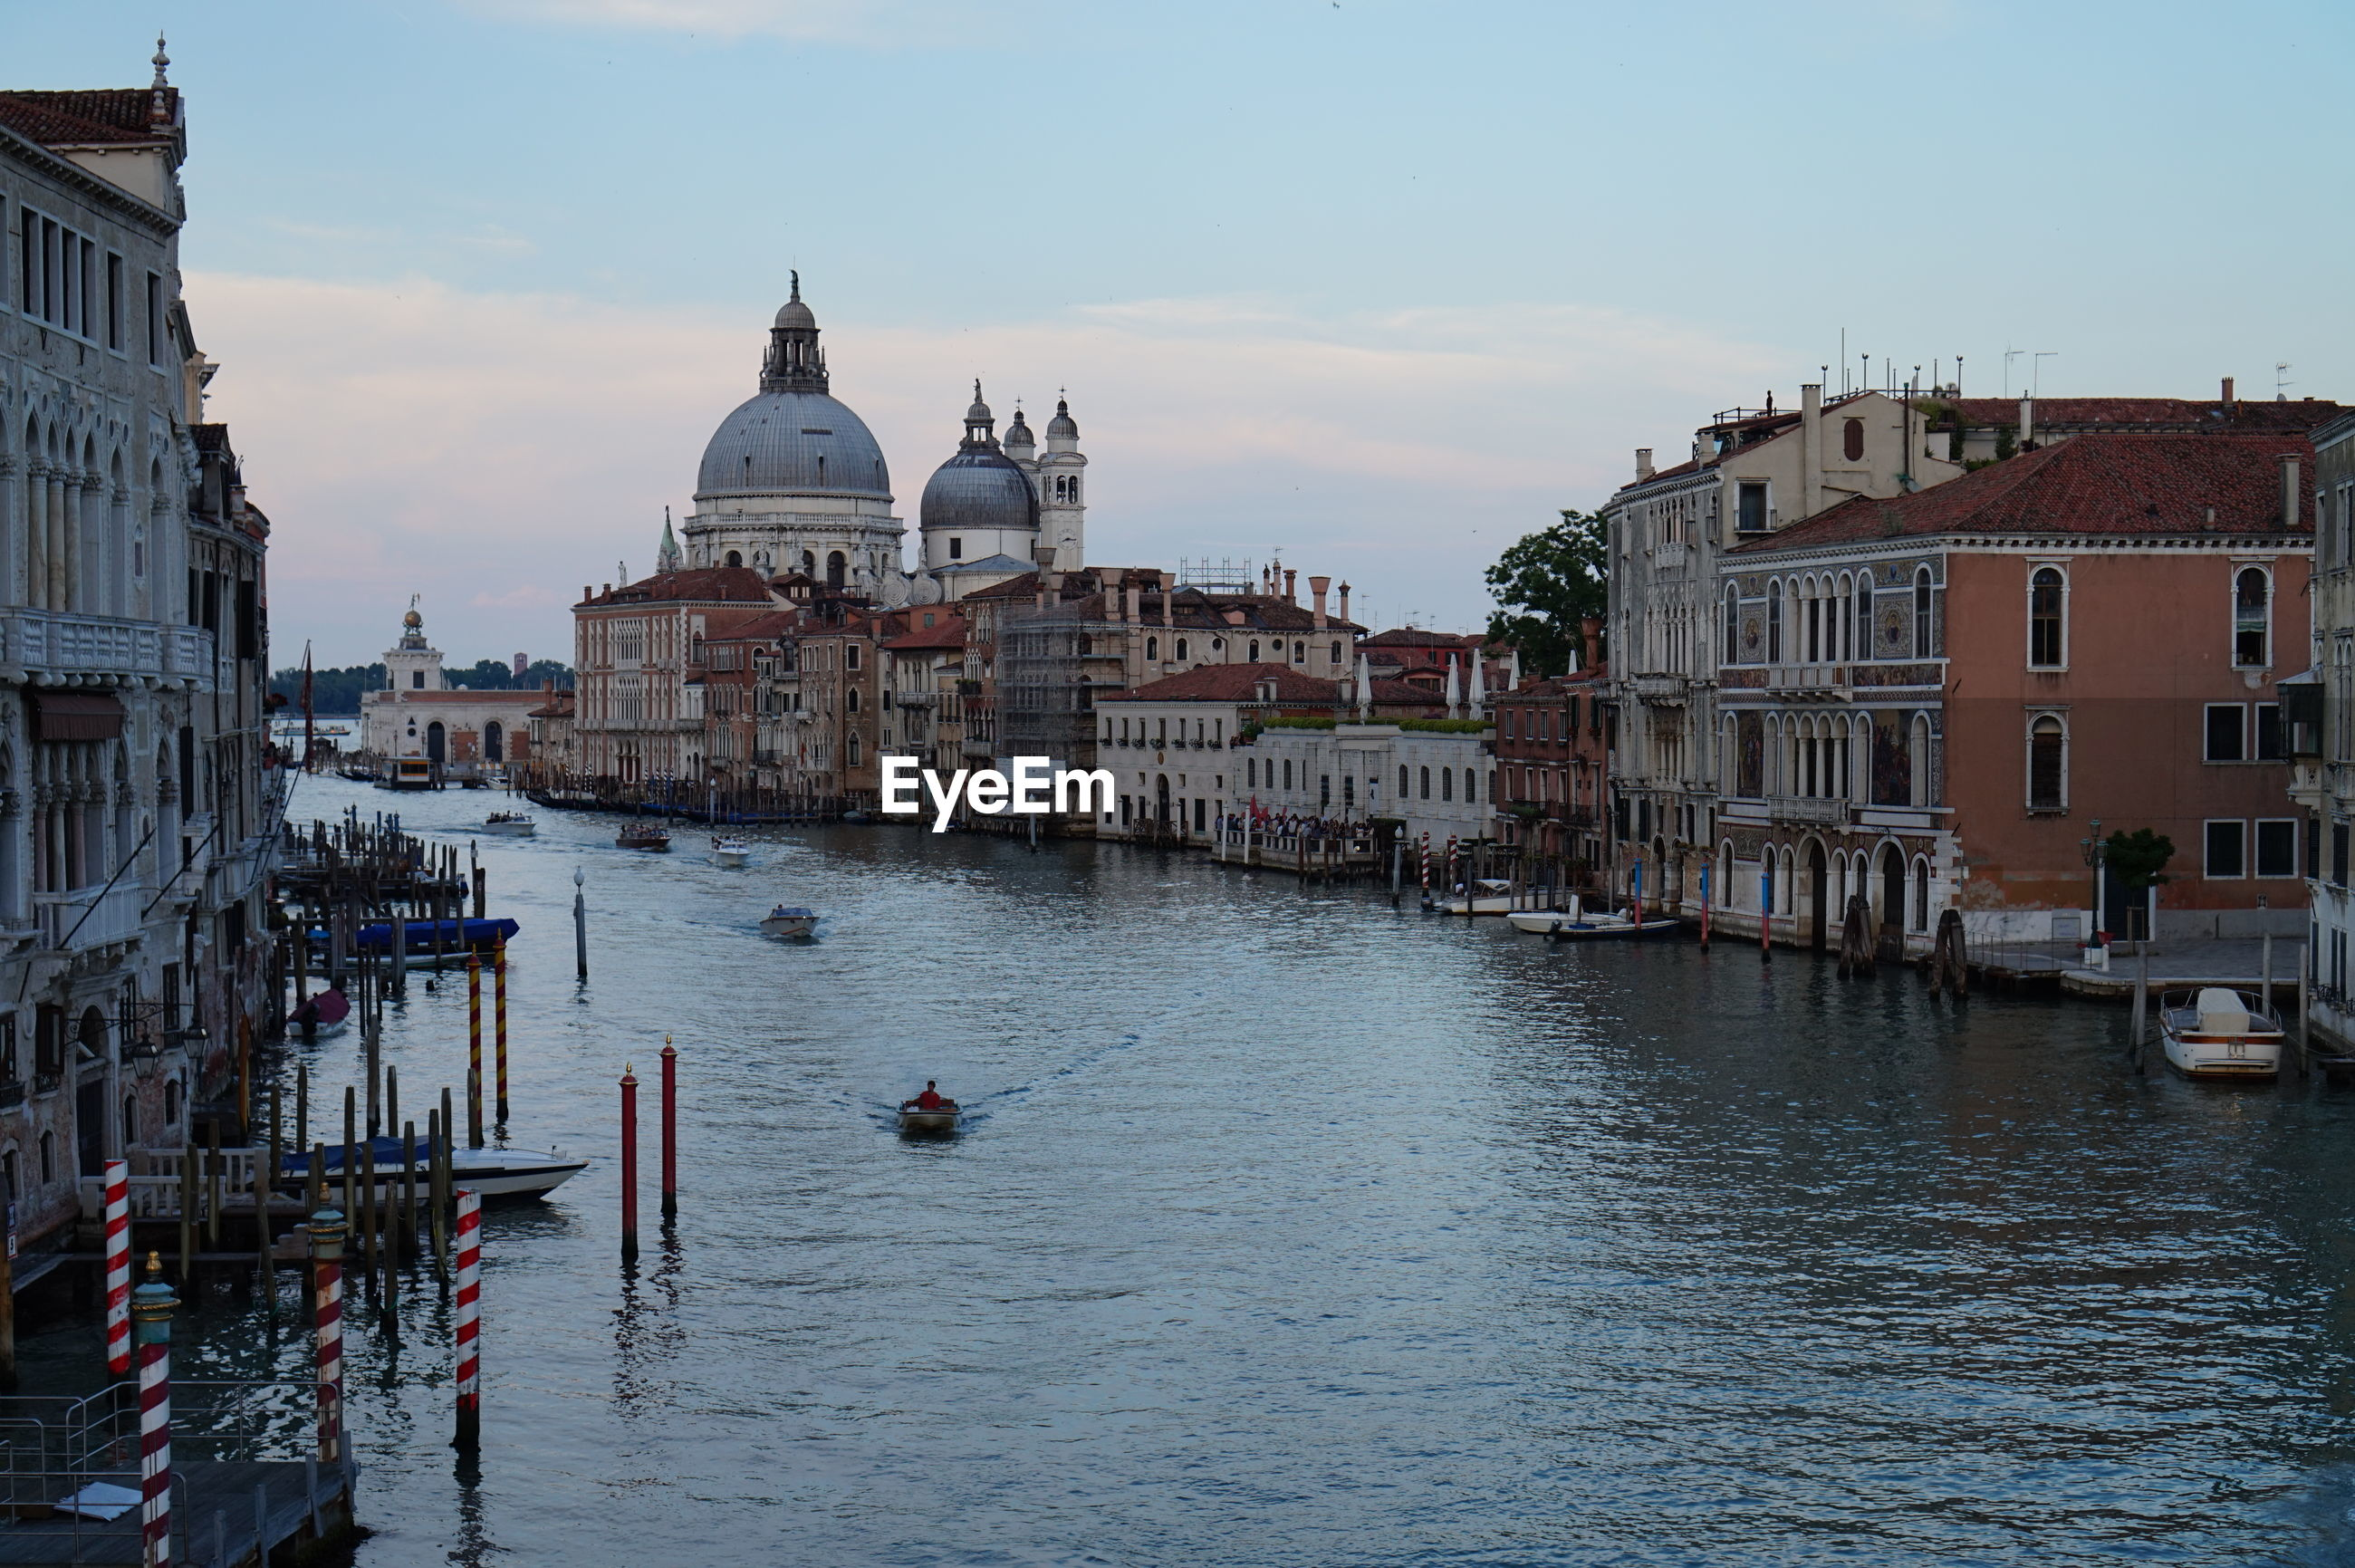 Santa maria della salute by grand canal against sky during sunset